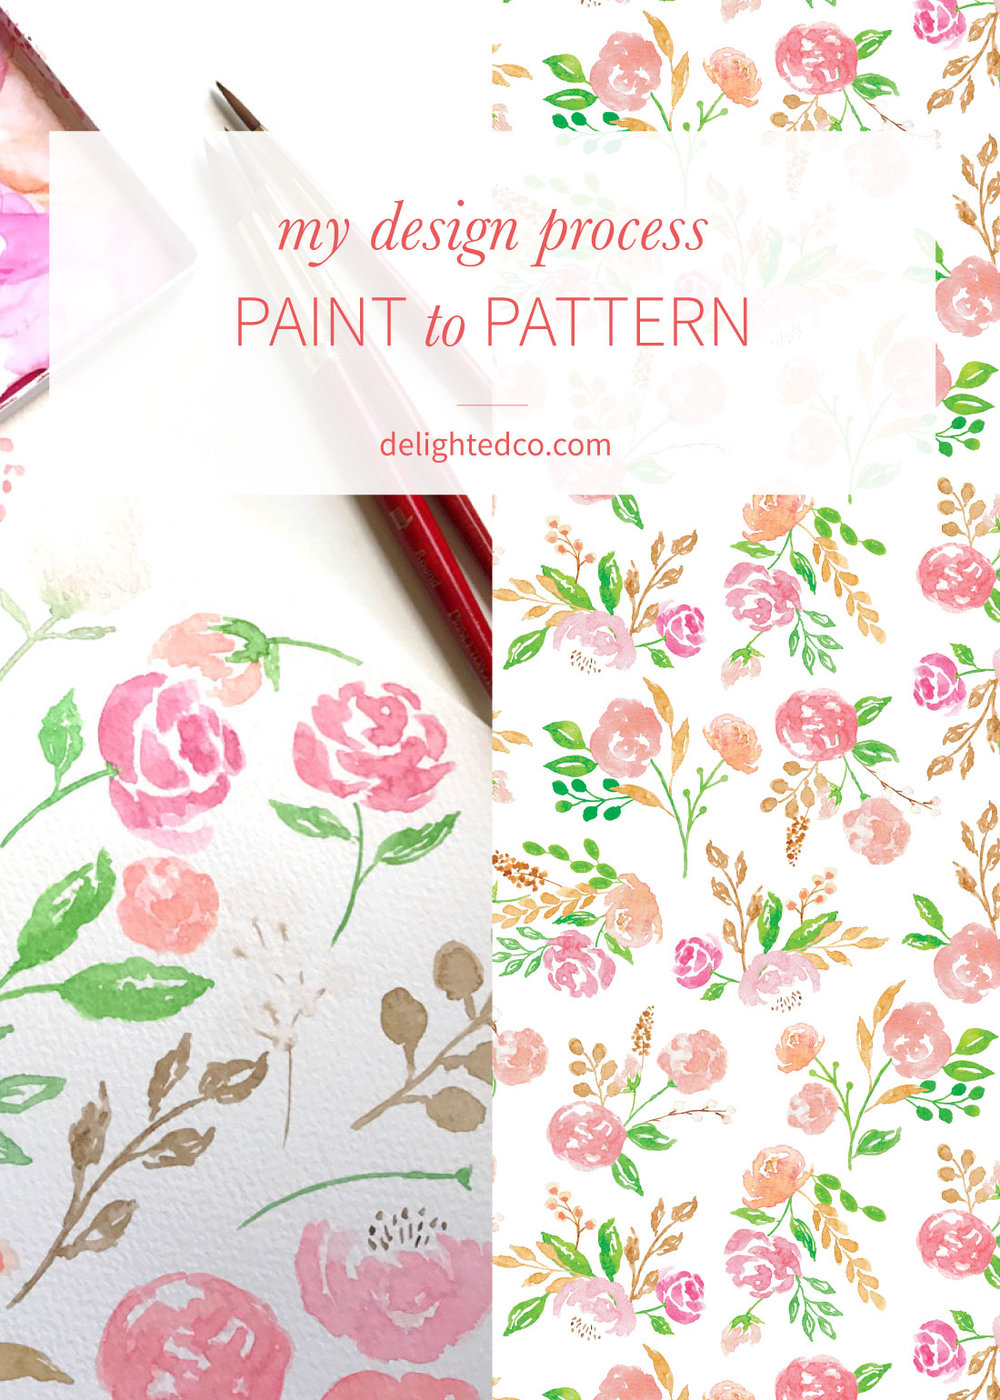 Paint-to-pattern-design-process-amanda-gomes-delightedco.jpg